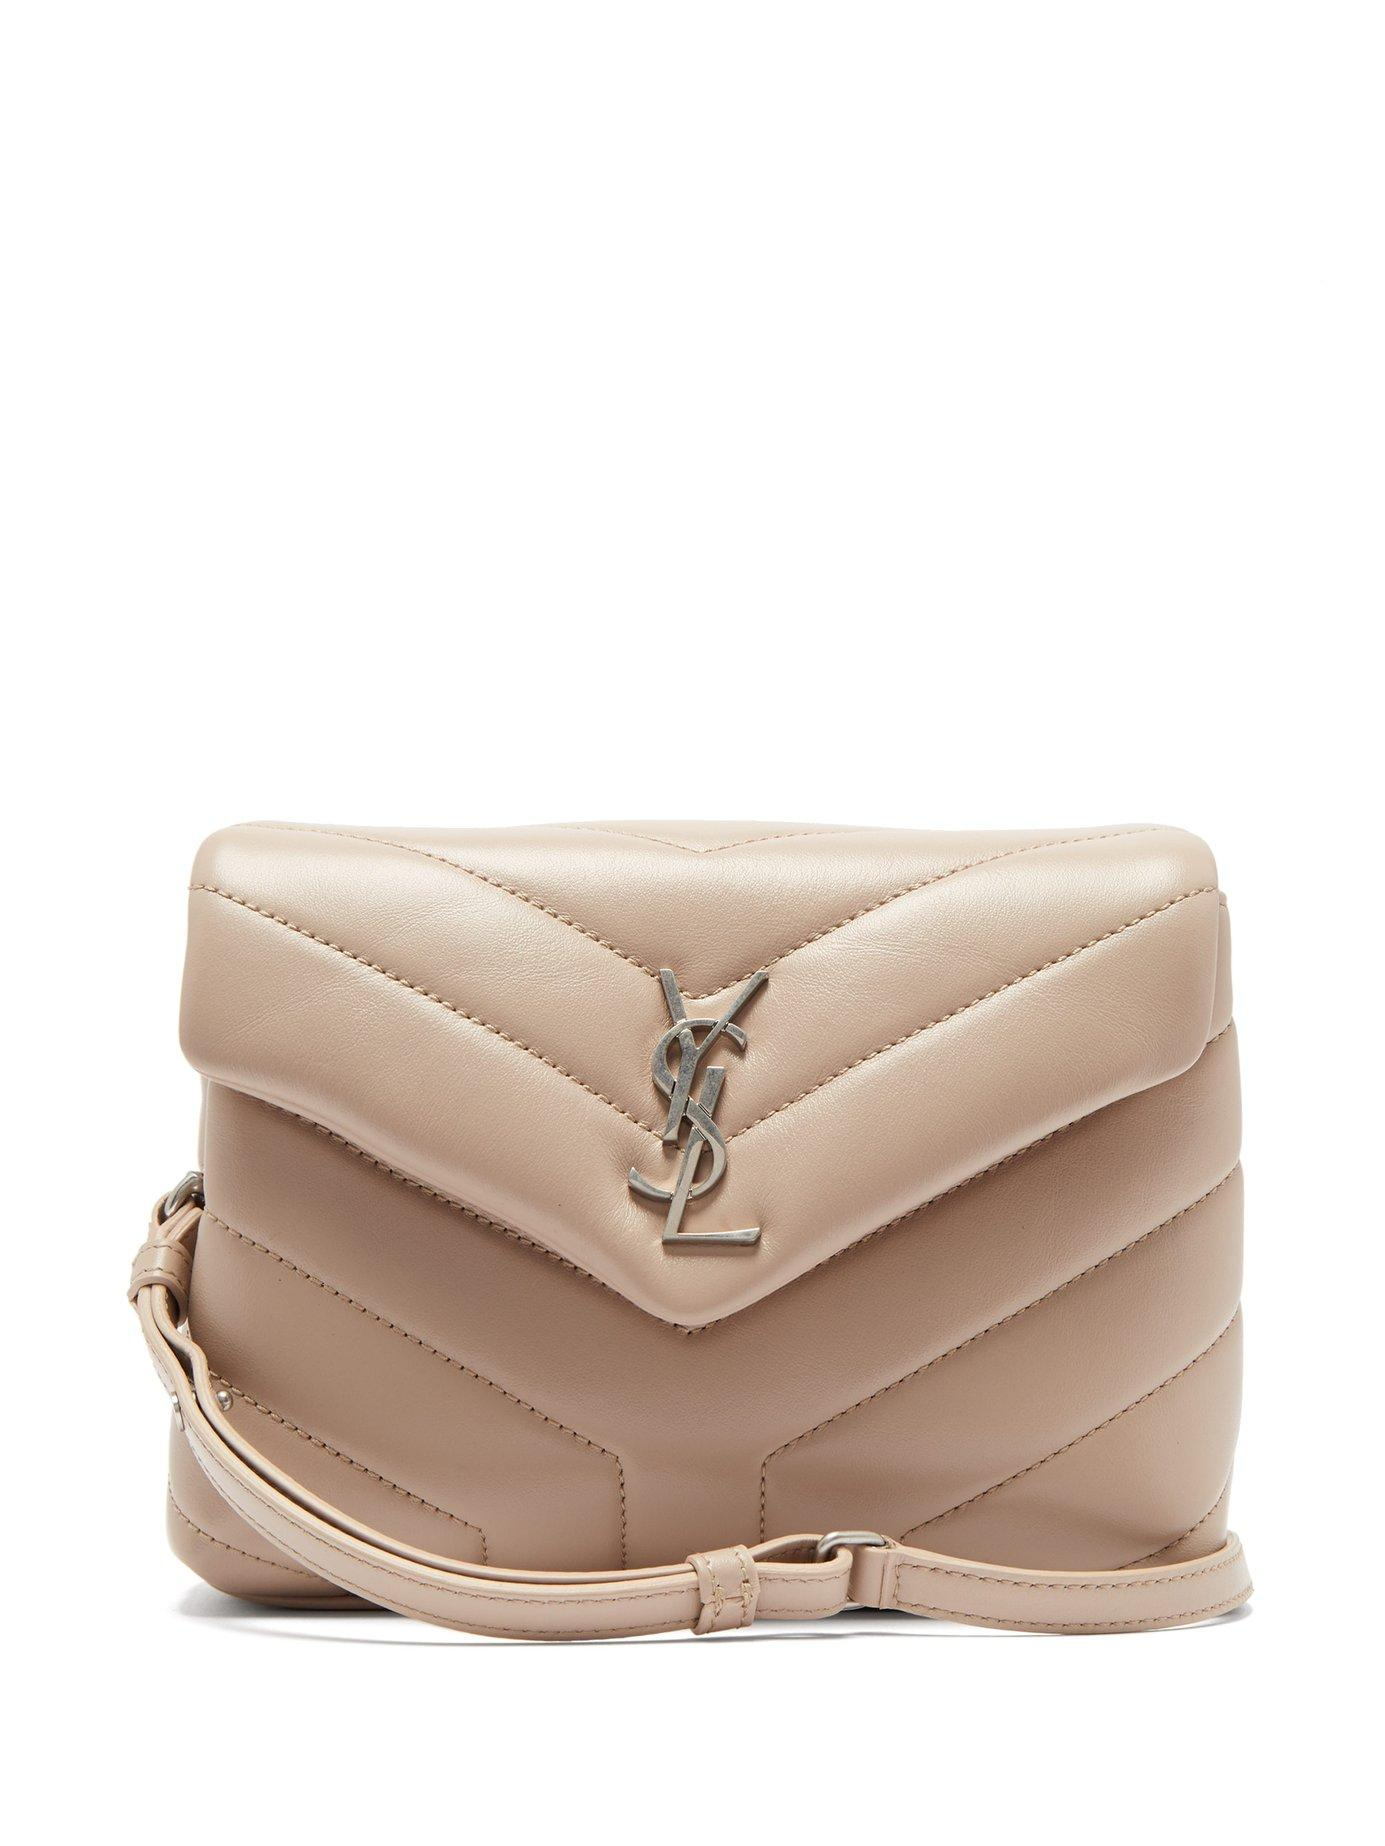 ae4aaa1b5272 Saint Laurent. Women s Natural Loulou Small Quilted Leather Cross Body Bag